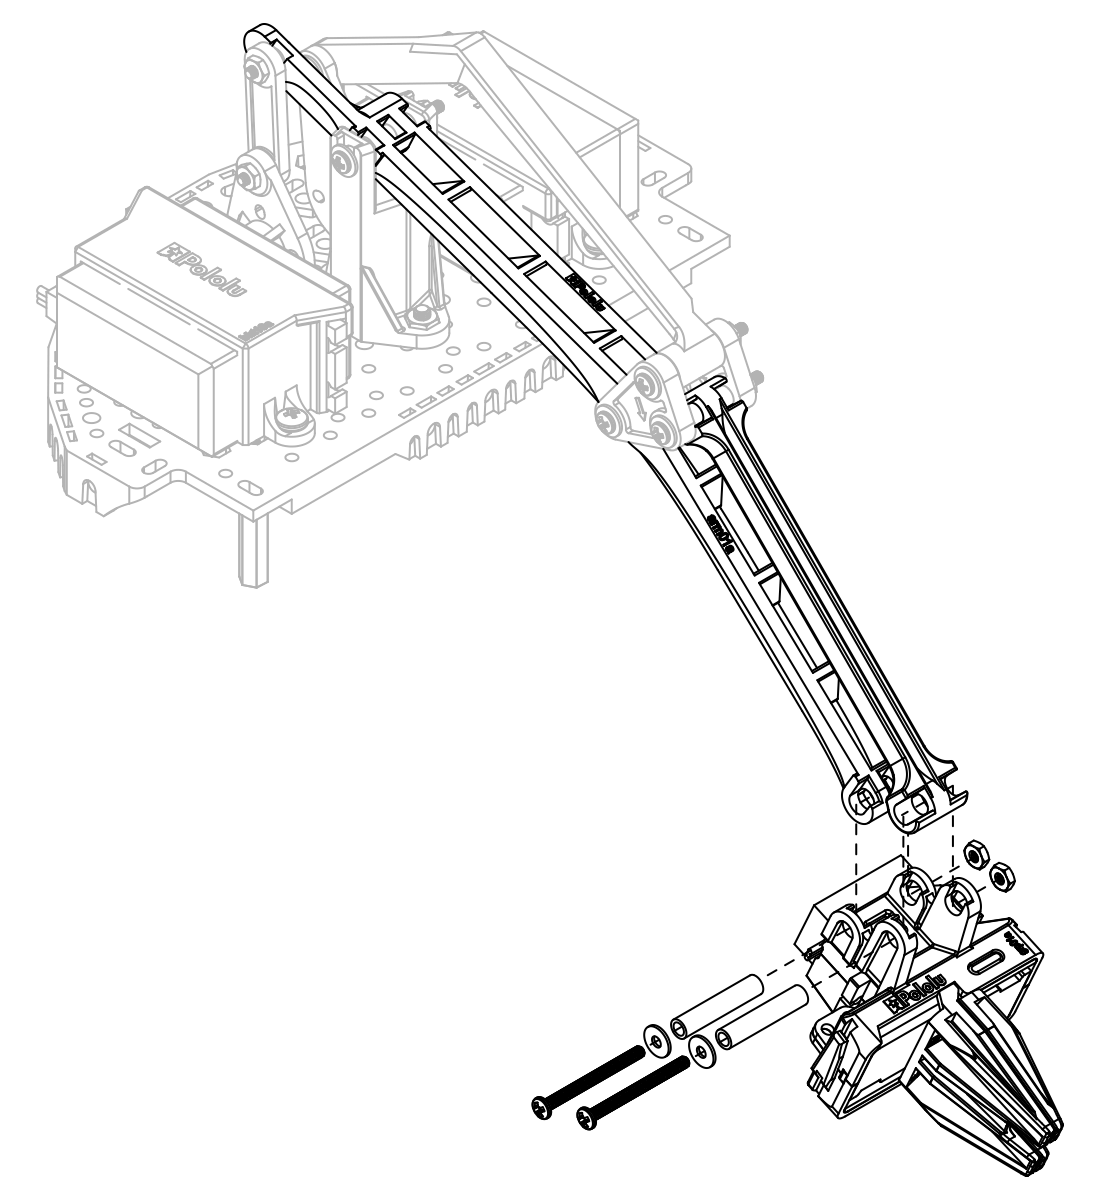 pololu user s guide for the robot arm kit for romi Sanyo EtherCAT Servo to keep the servo wires tidy you can snake them back along the main arm through the holes down the spine